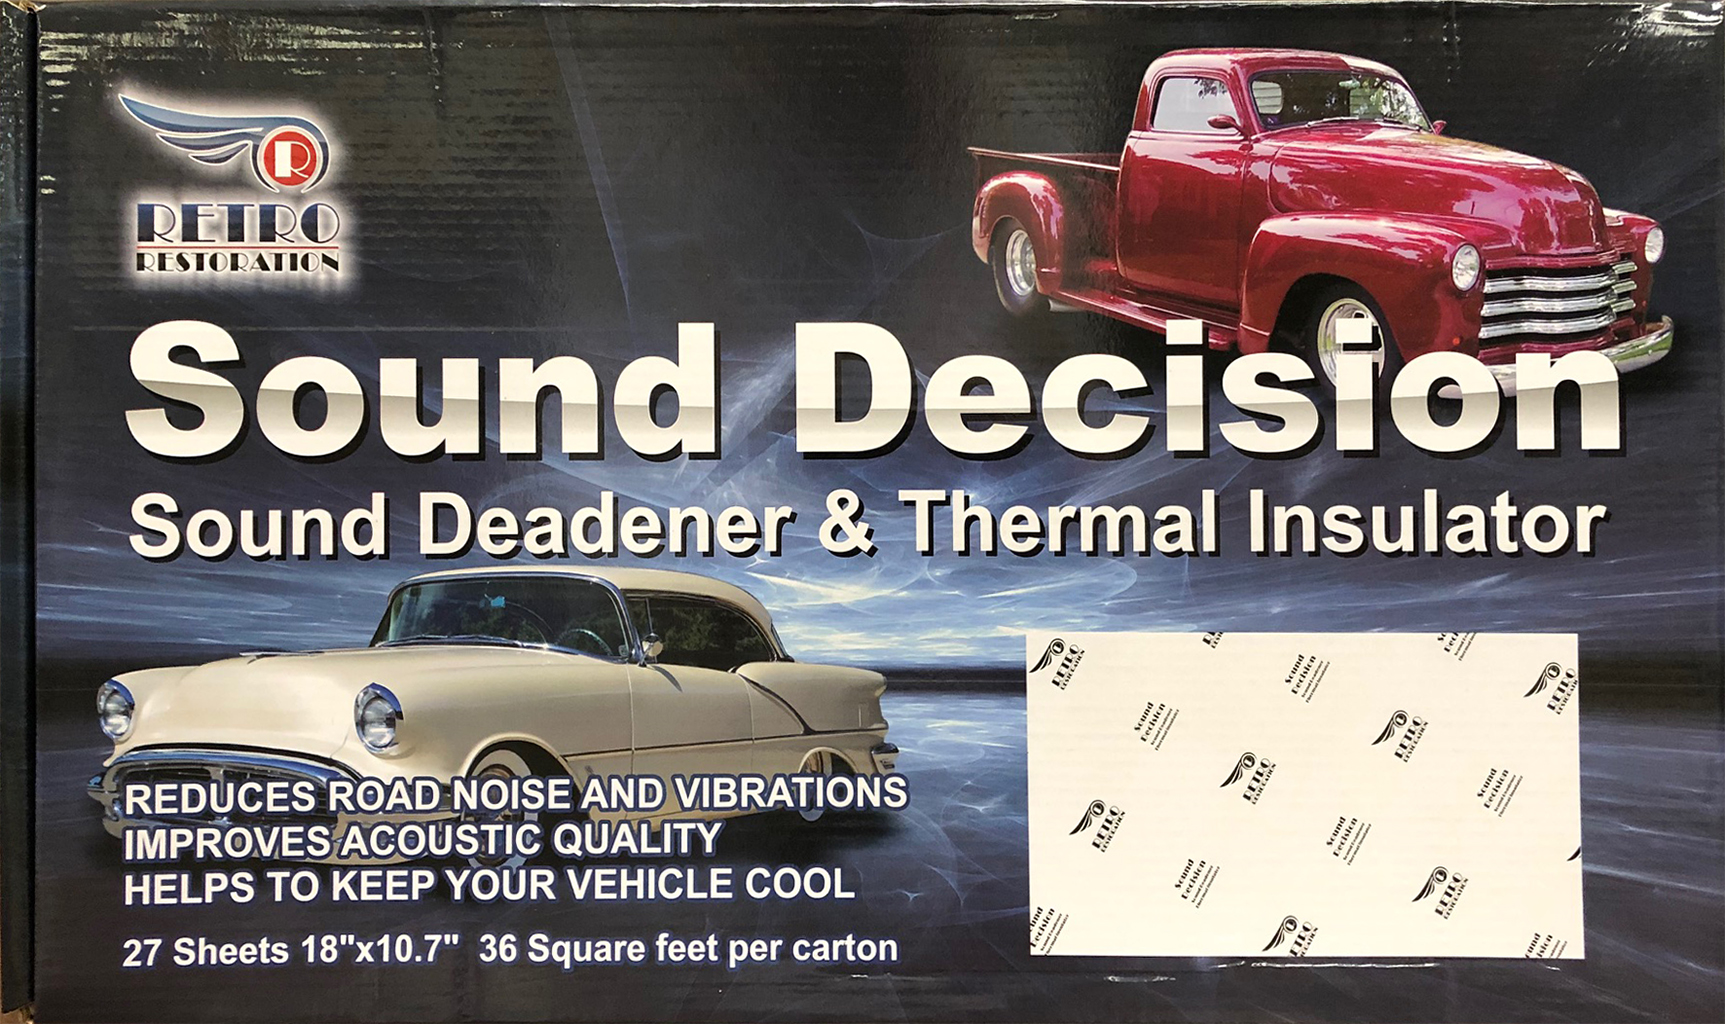 Retro Sound Deadener & Thermal Insulator-36 Sq Feet